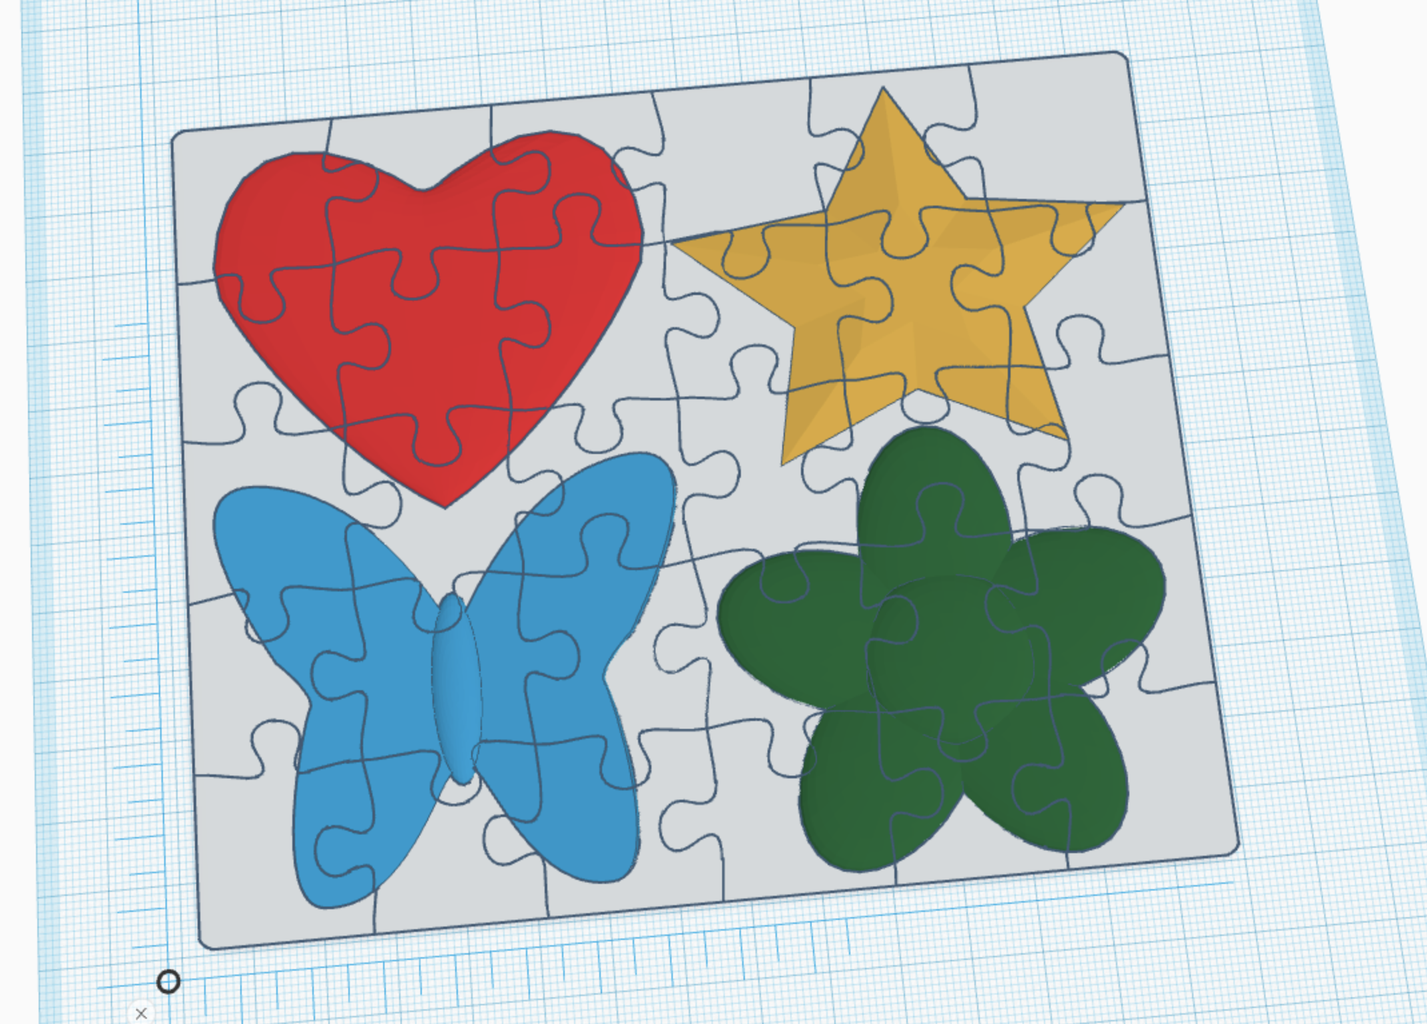 Duplicate Puzzle Cutout and Group